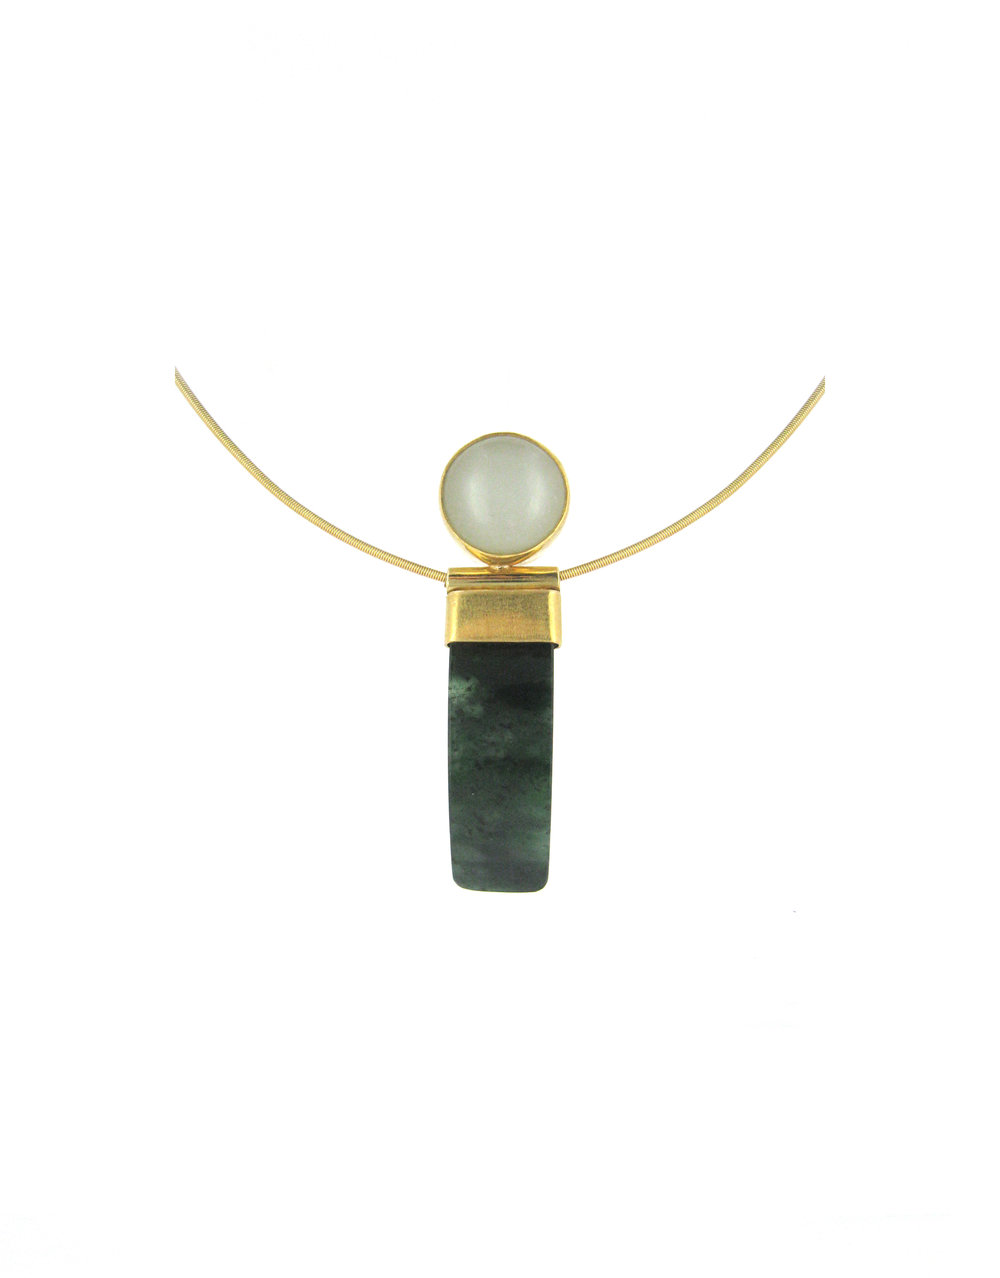 Highly prized, this pendant of Mutton Fat Nephrite antique button is joined with semi-translucent curved rich Spinach Jadeite in warm brushed 18-karat gold.